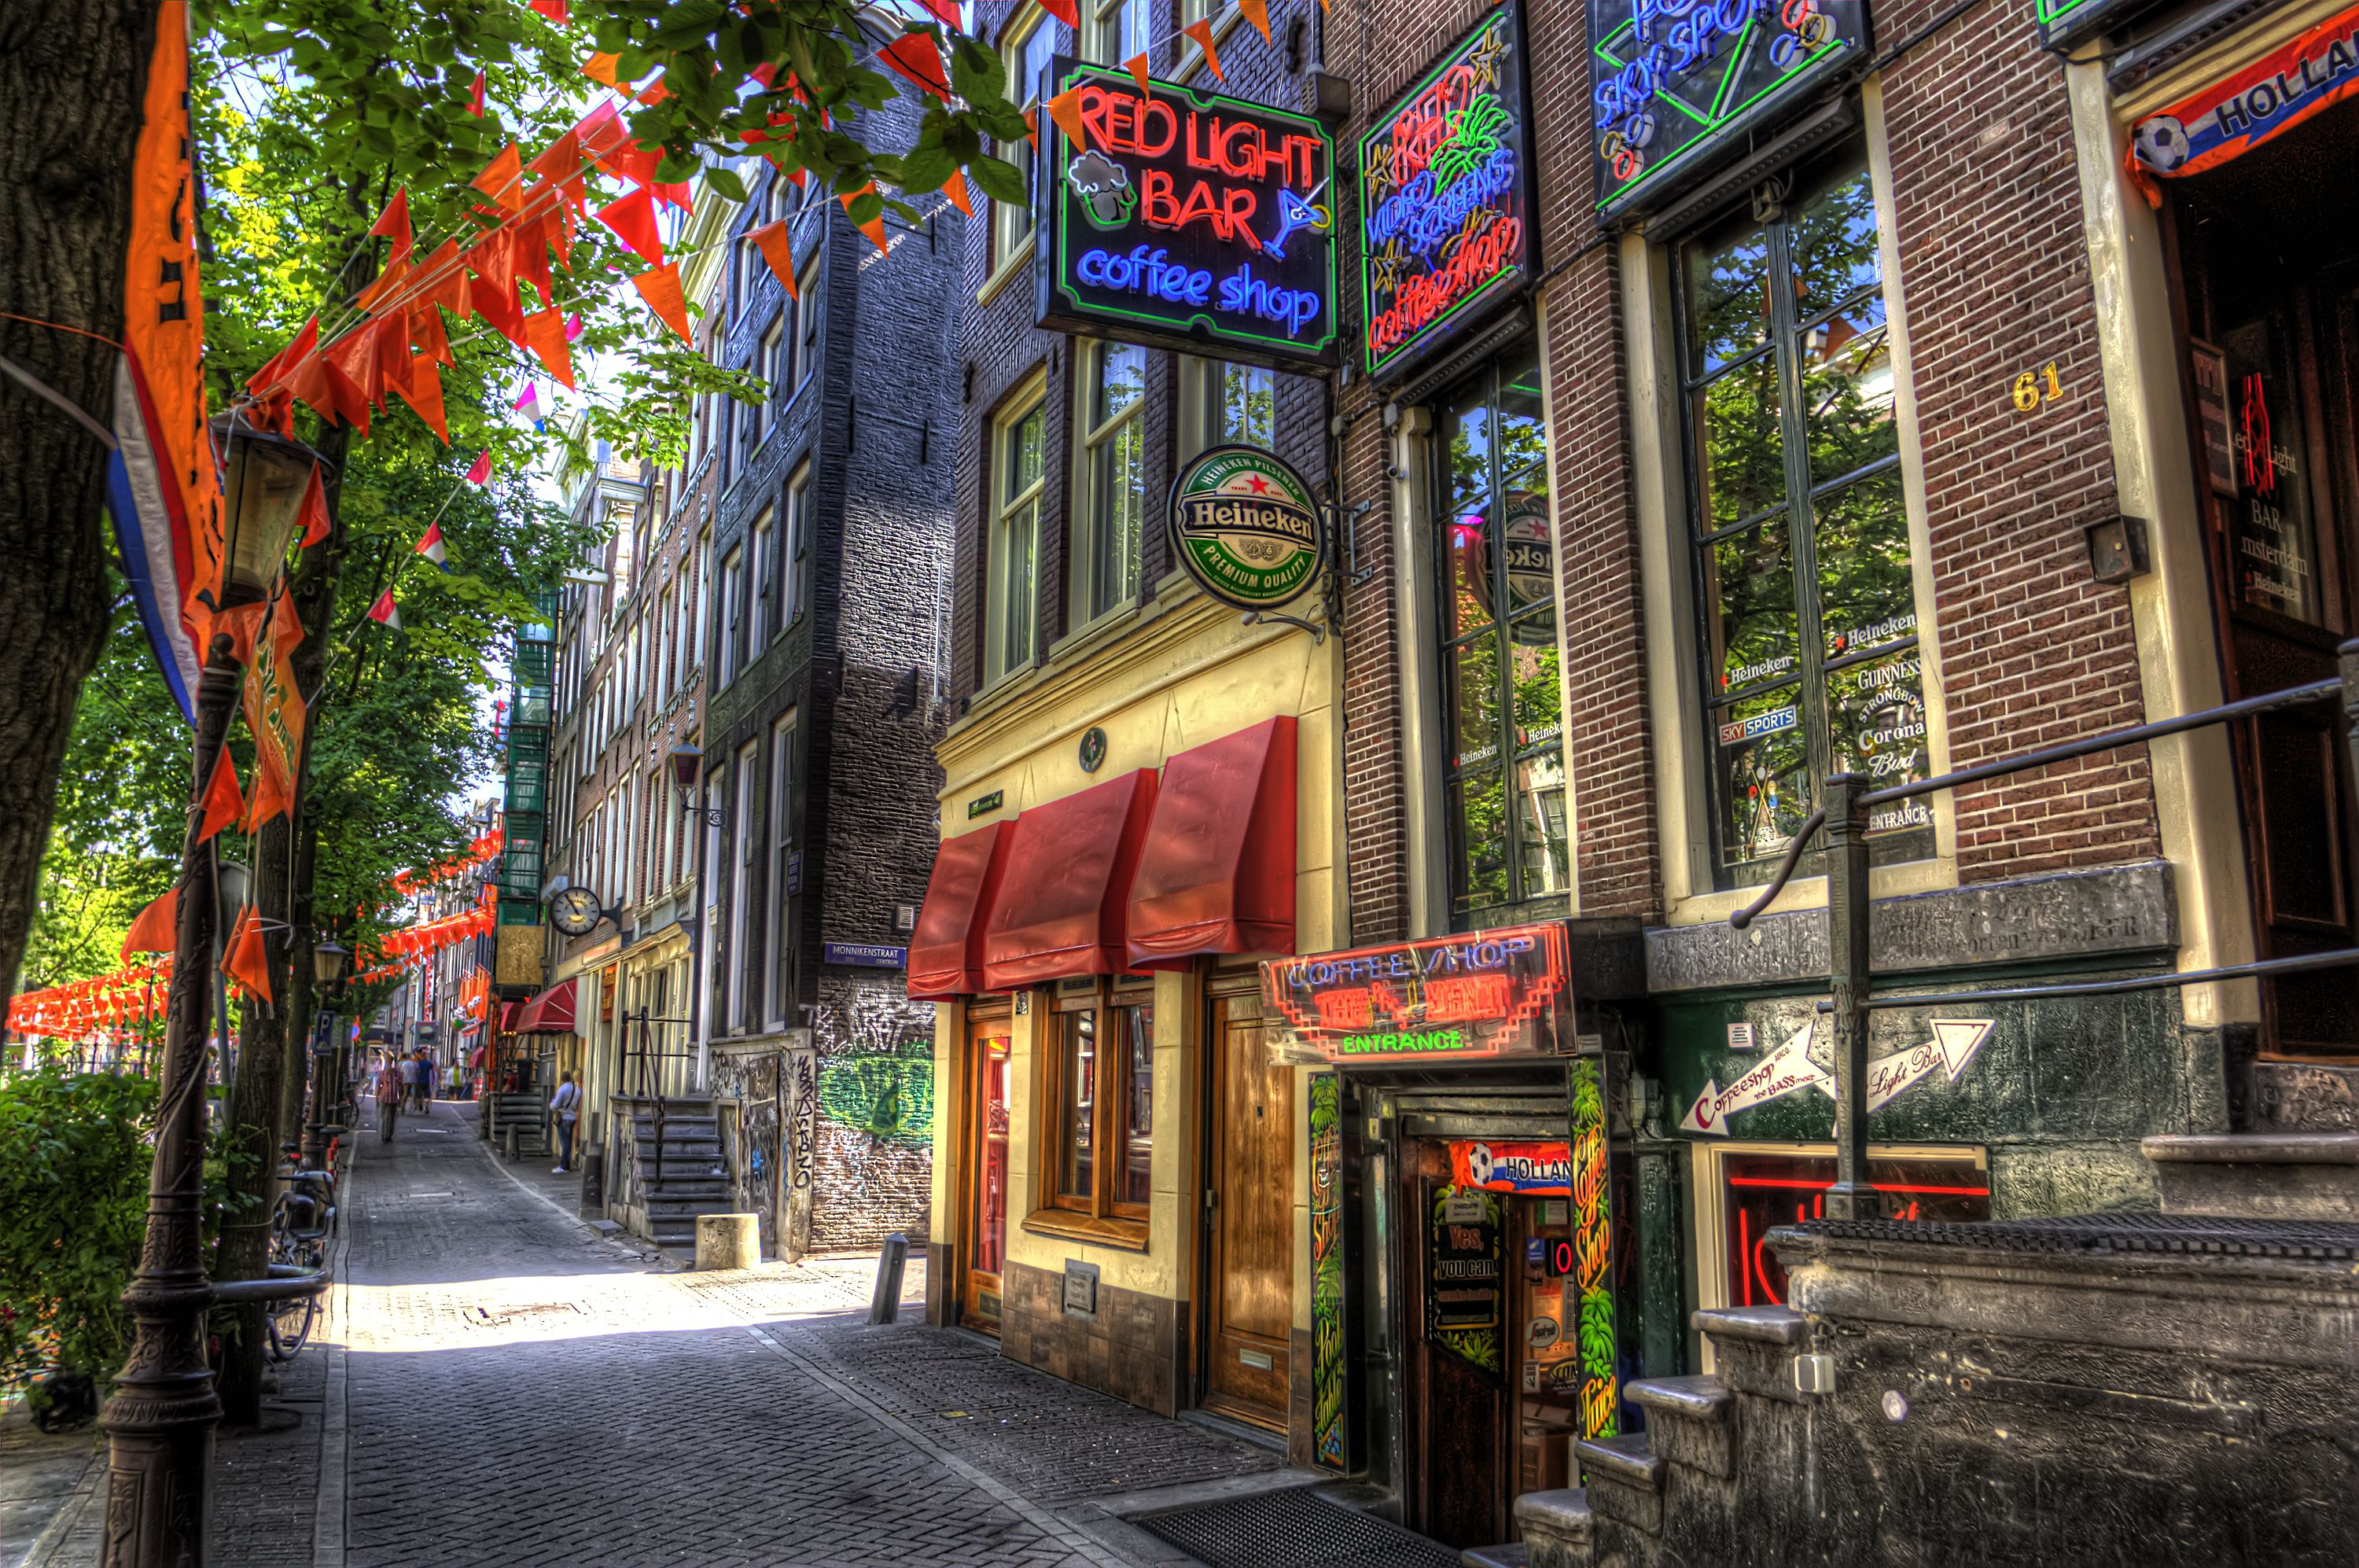 The red light bar coffee shop holland visit amsterdam and amsterdam is famous across the planet for its cannabis coffee shops which are the reason why many tourists come and visit the city aloadofball Gallery